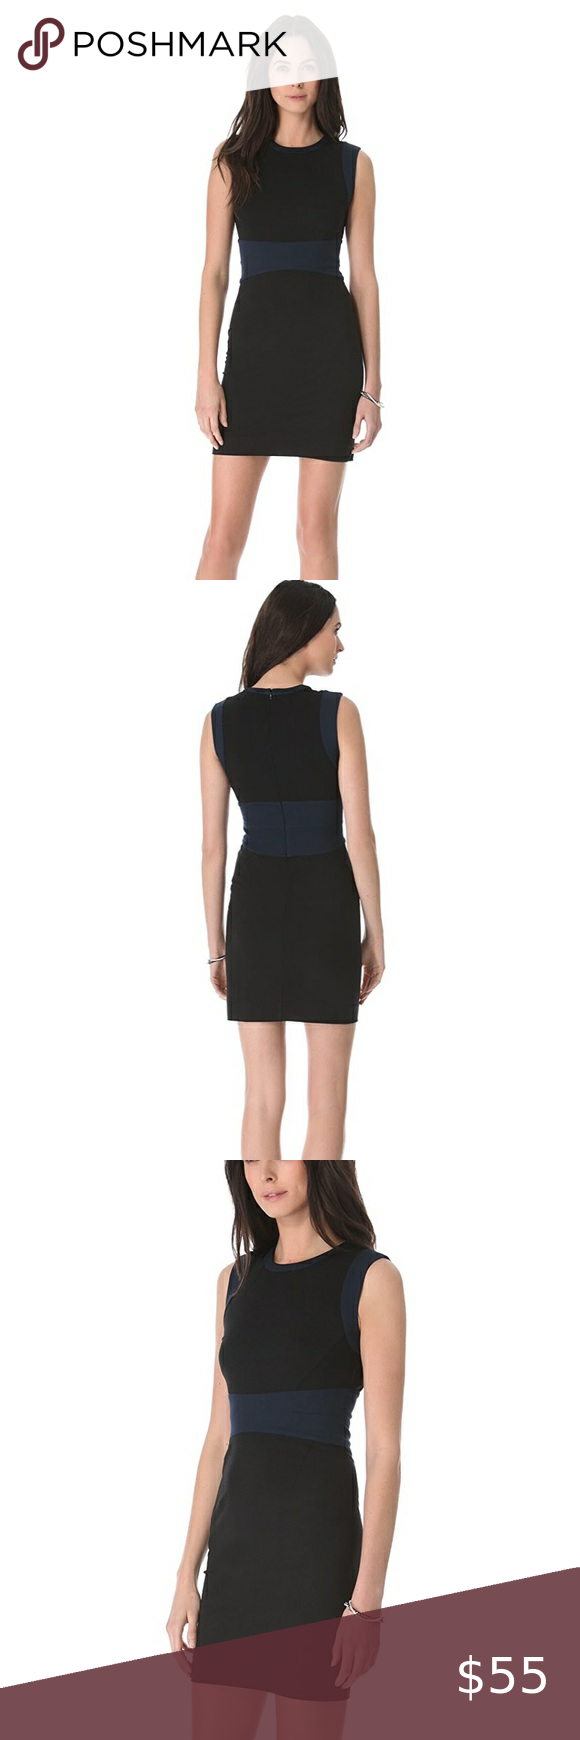 Diane von Furstenberg Gretchen Colorblock Dress Di